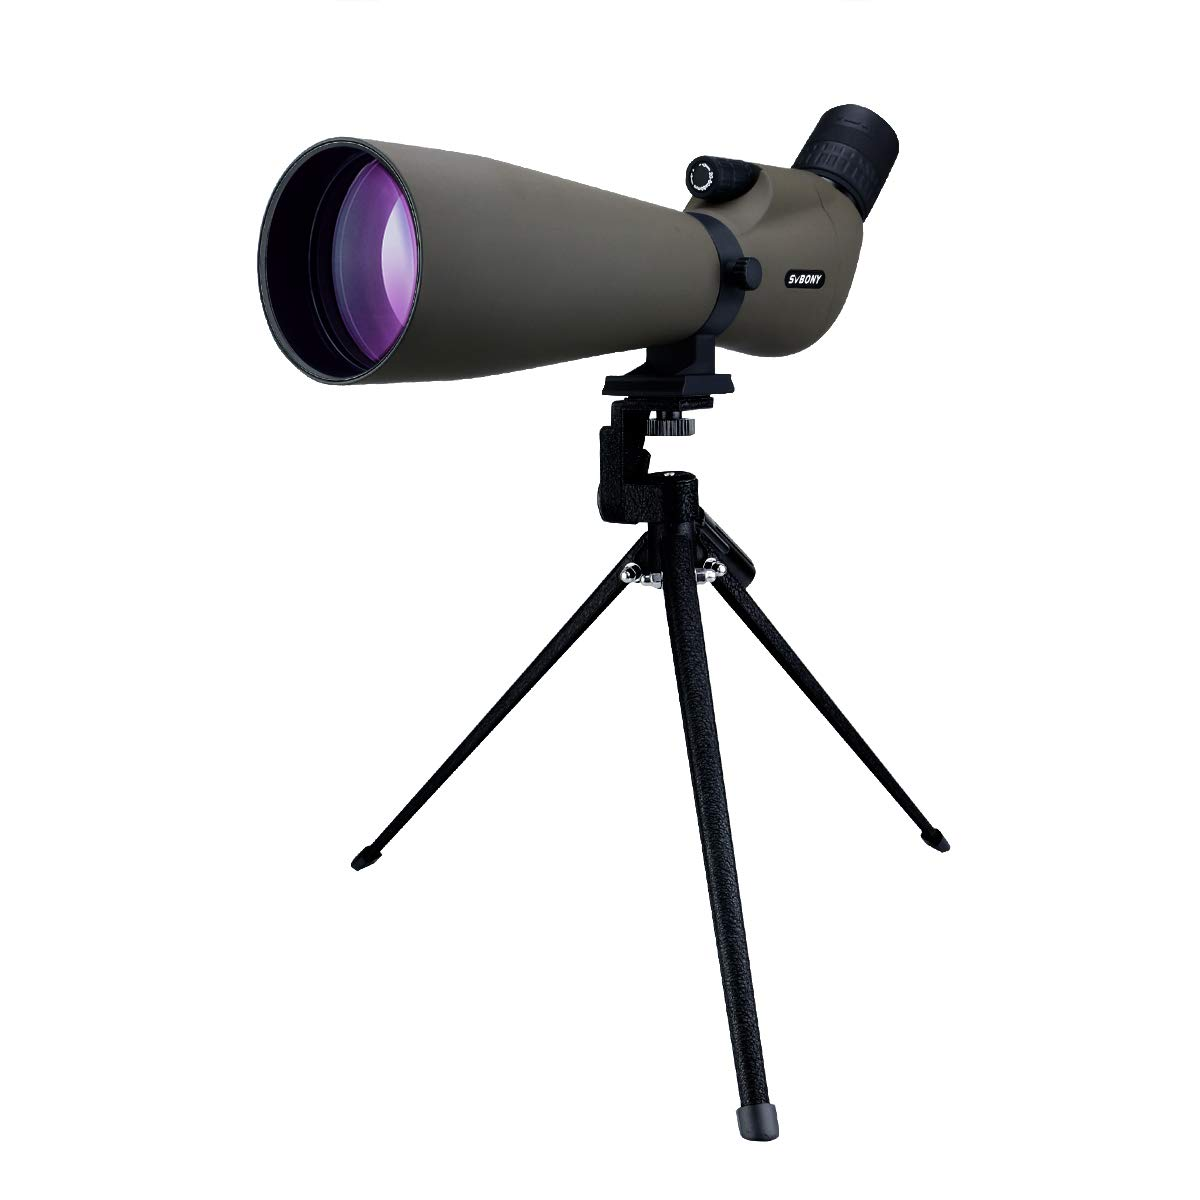 SVBONY SV401 Spotting Scope with Tripod IPX6 Waterproof 20x-60x80 Angled Eyepiece Prism FMC Optical Lens for Target Shooting Bird Watching by SVBONY